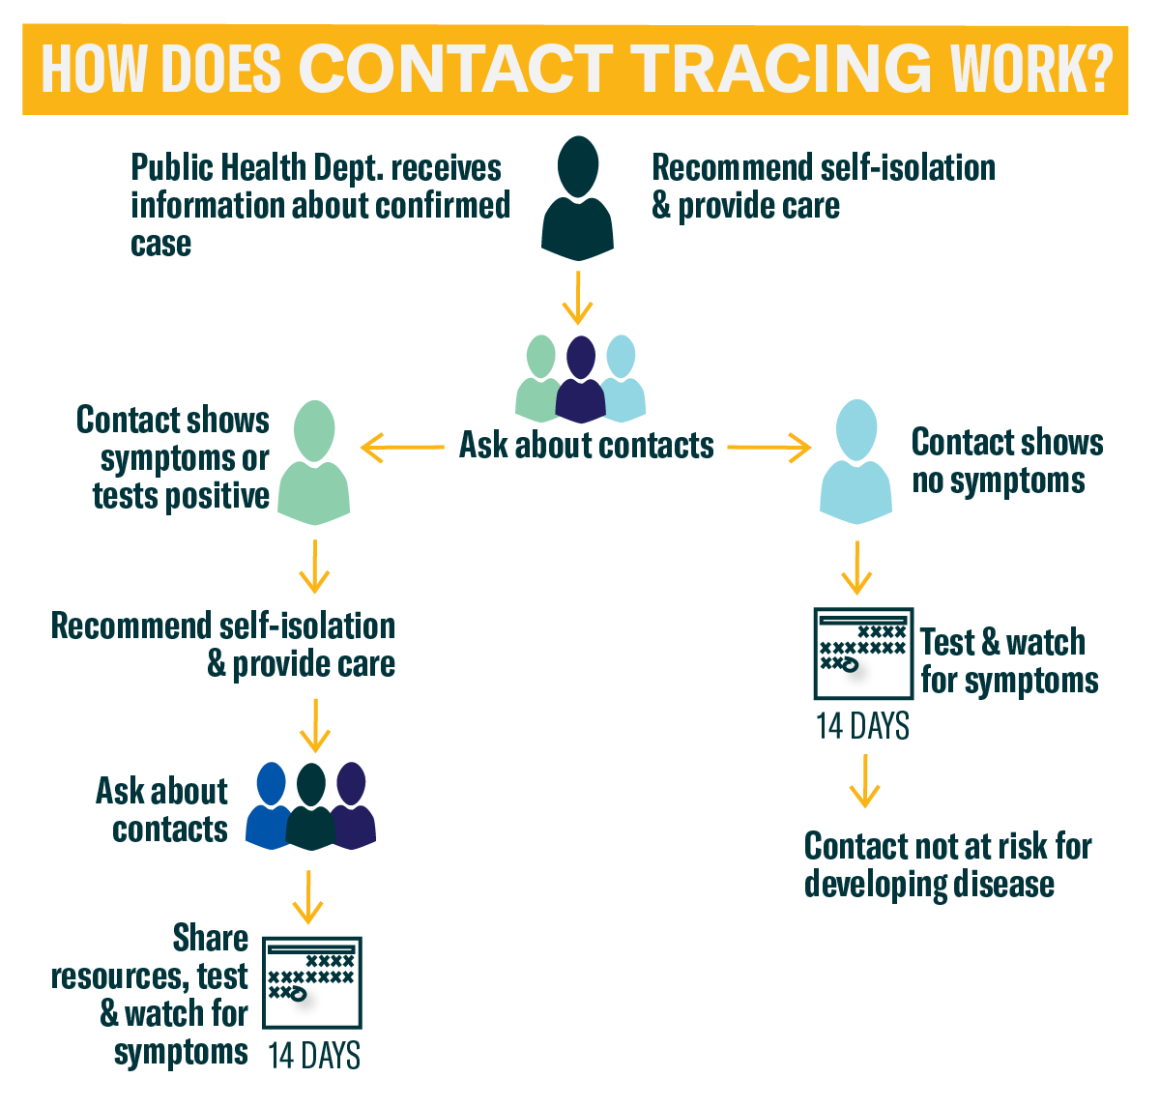 Contact Tracing Process